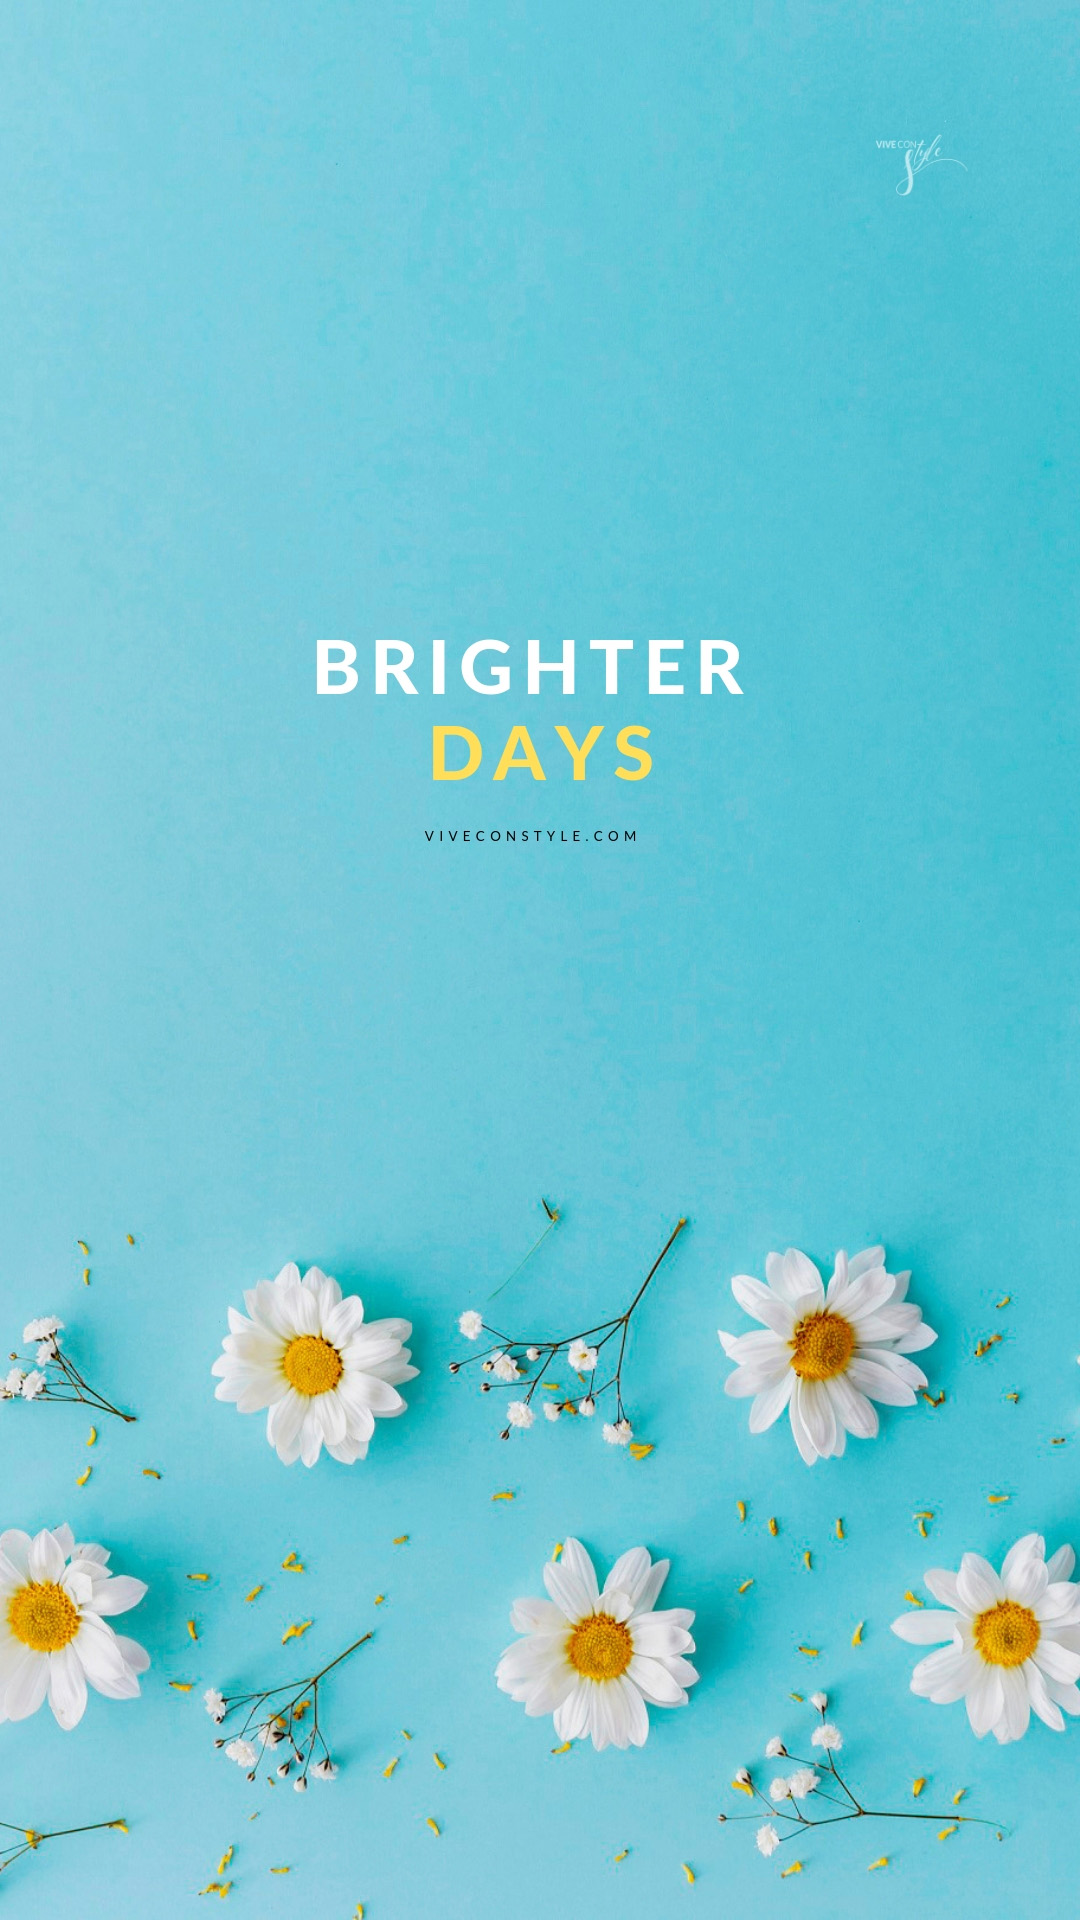 Brighter days spring mobile wallpaper VIVE CON STYLE 1080x1920